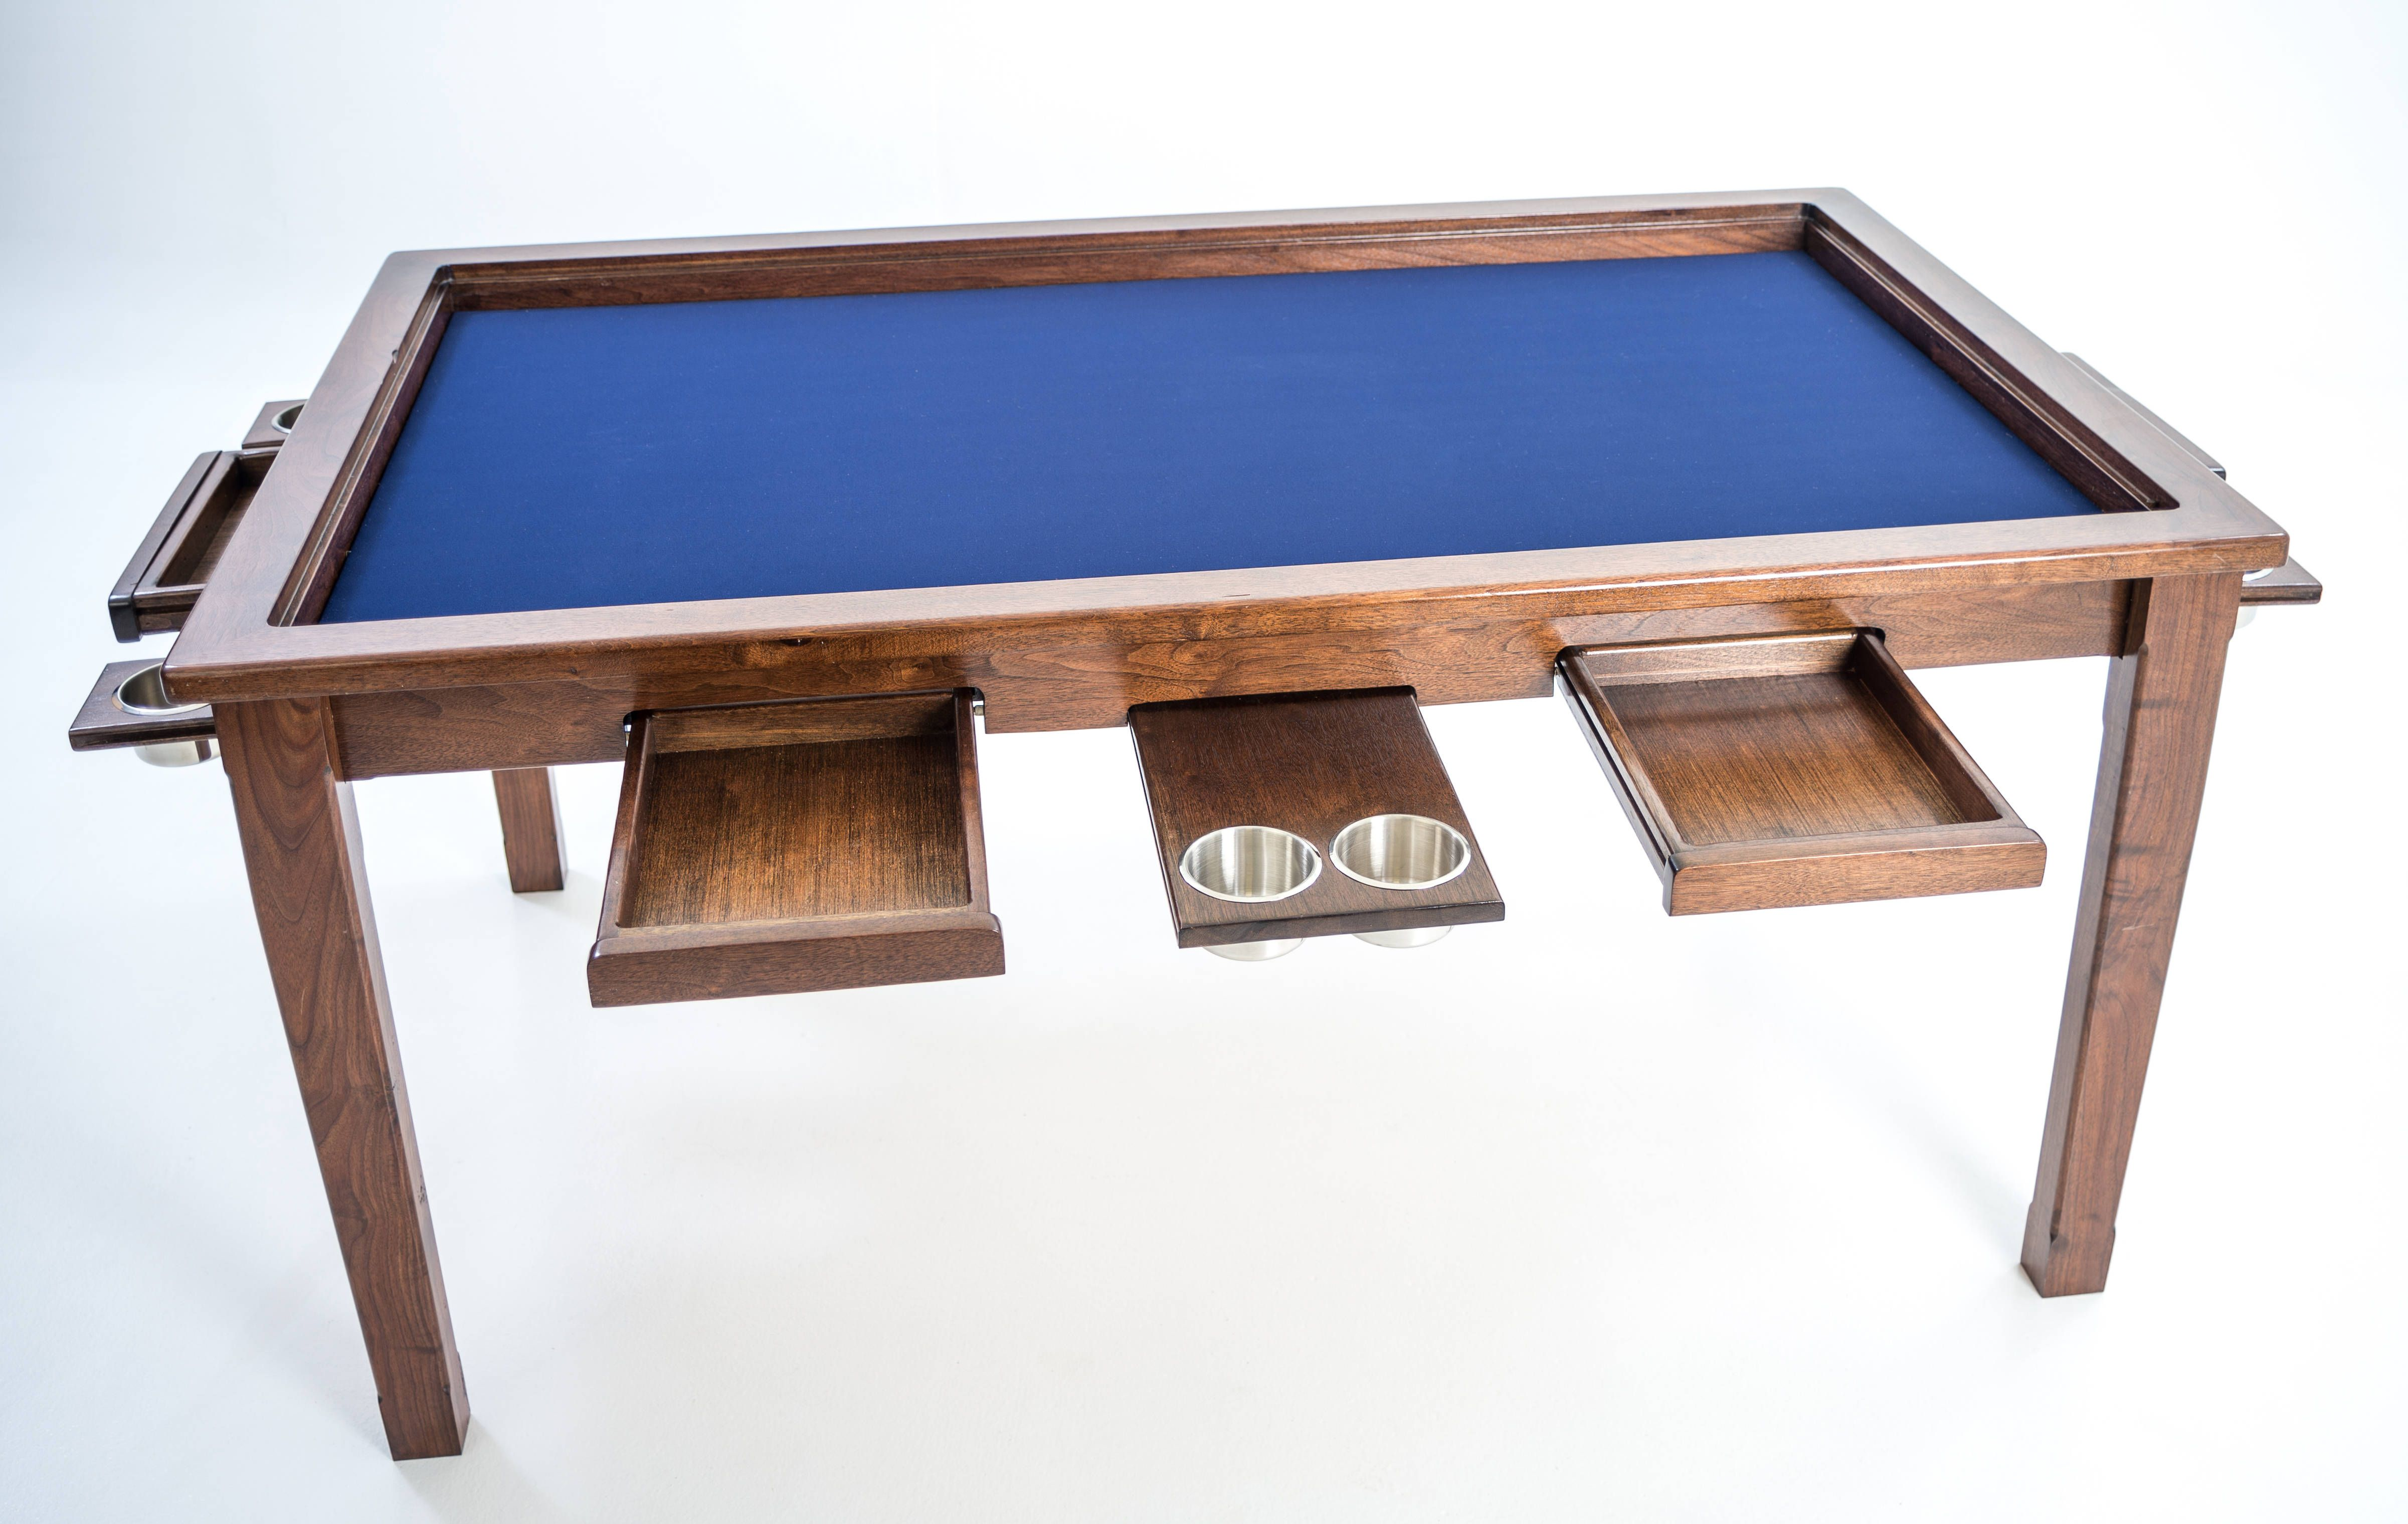 You Can Win A Free Board Gaming Table. Http://prmo.me